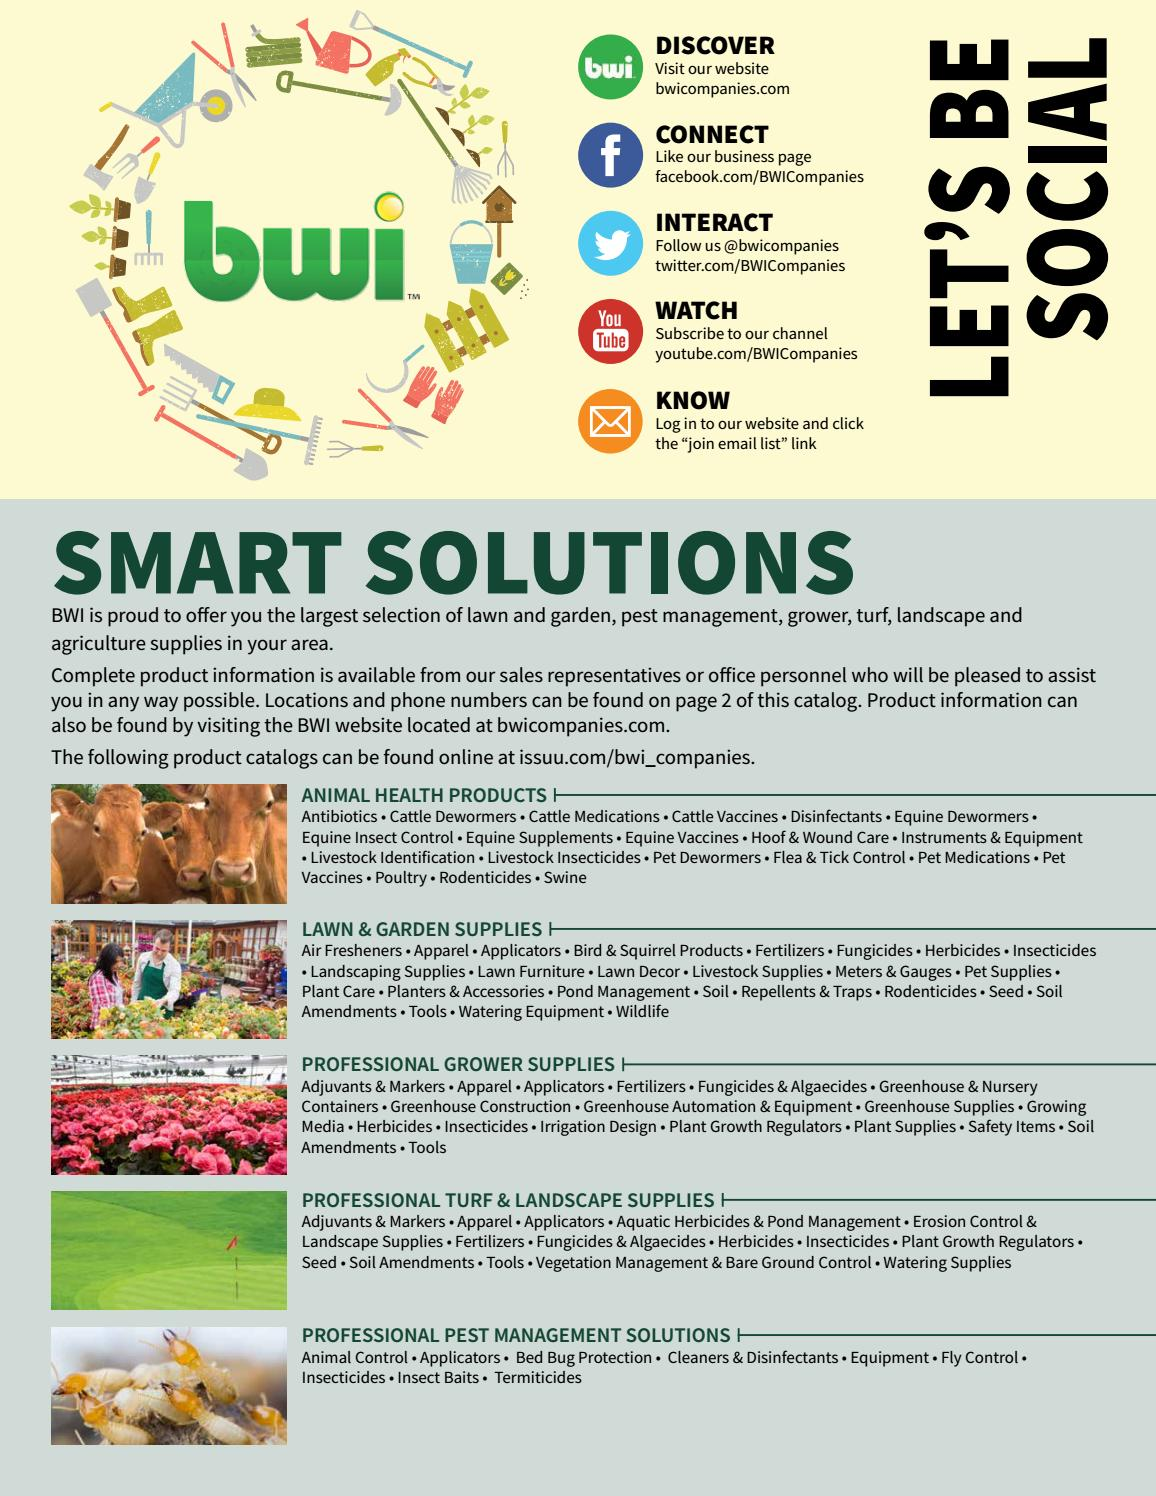 Bwi Professional Turf Landscape Catalog By Companies